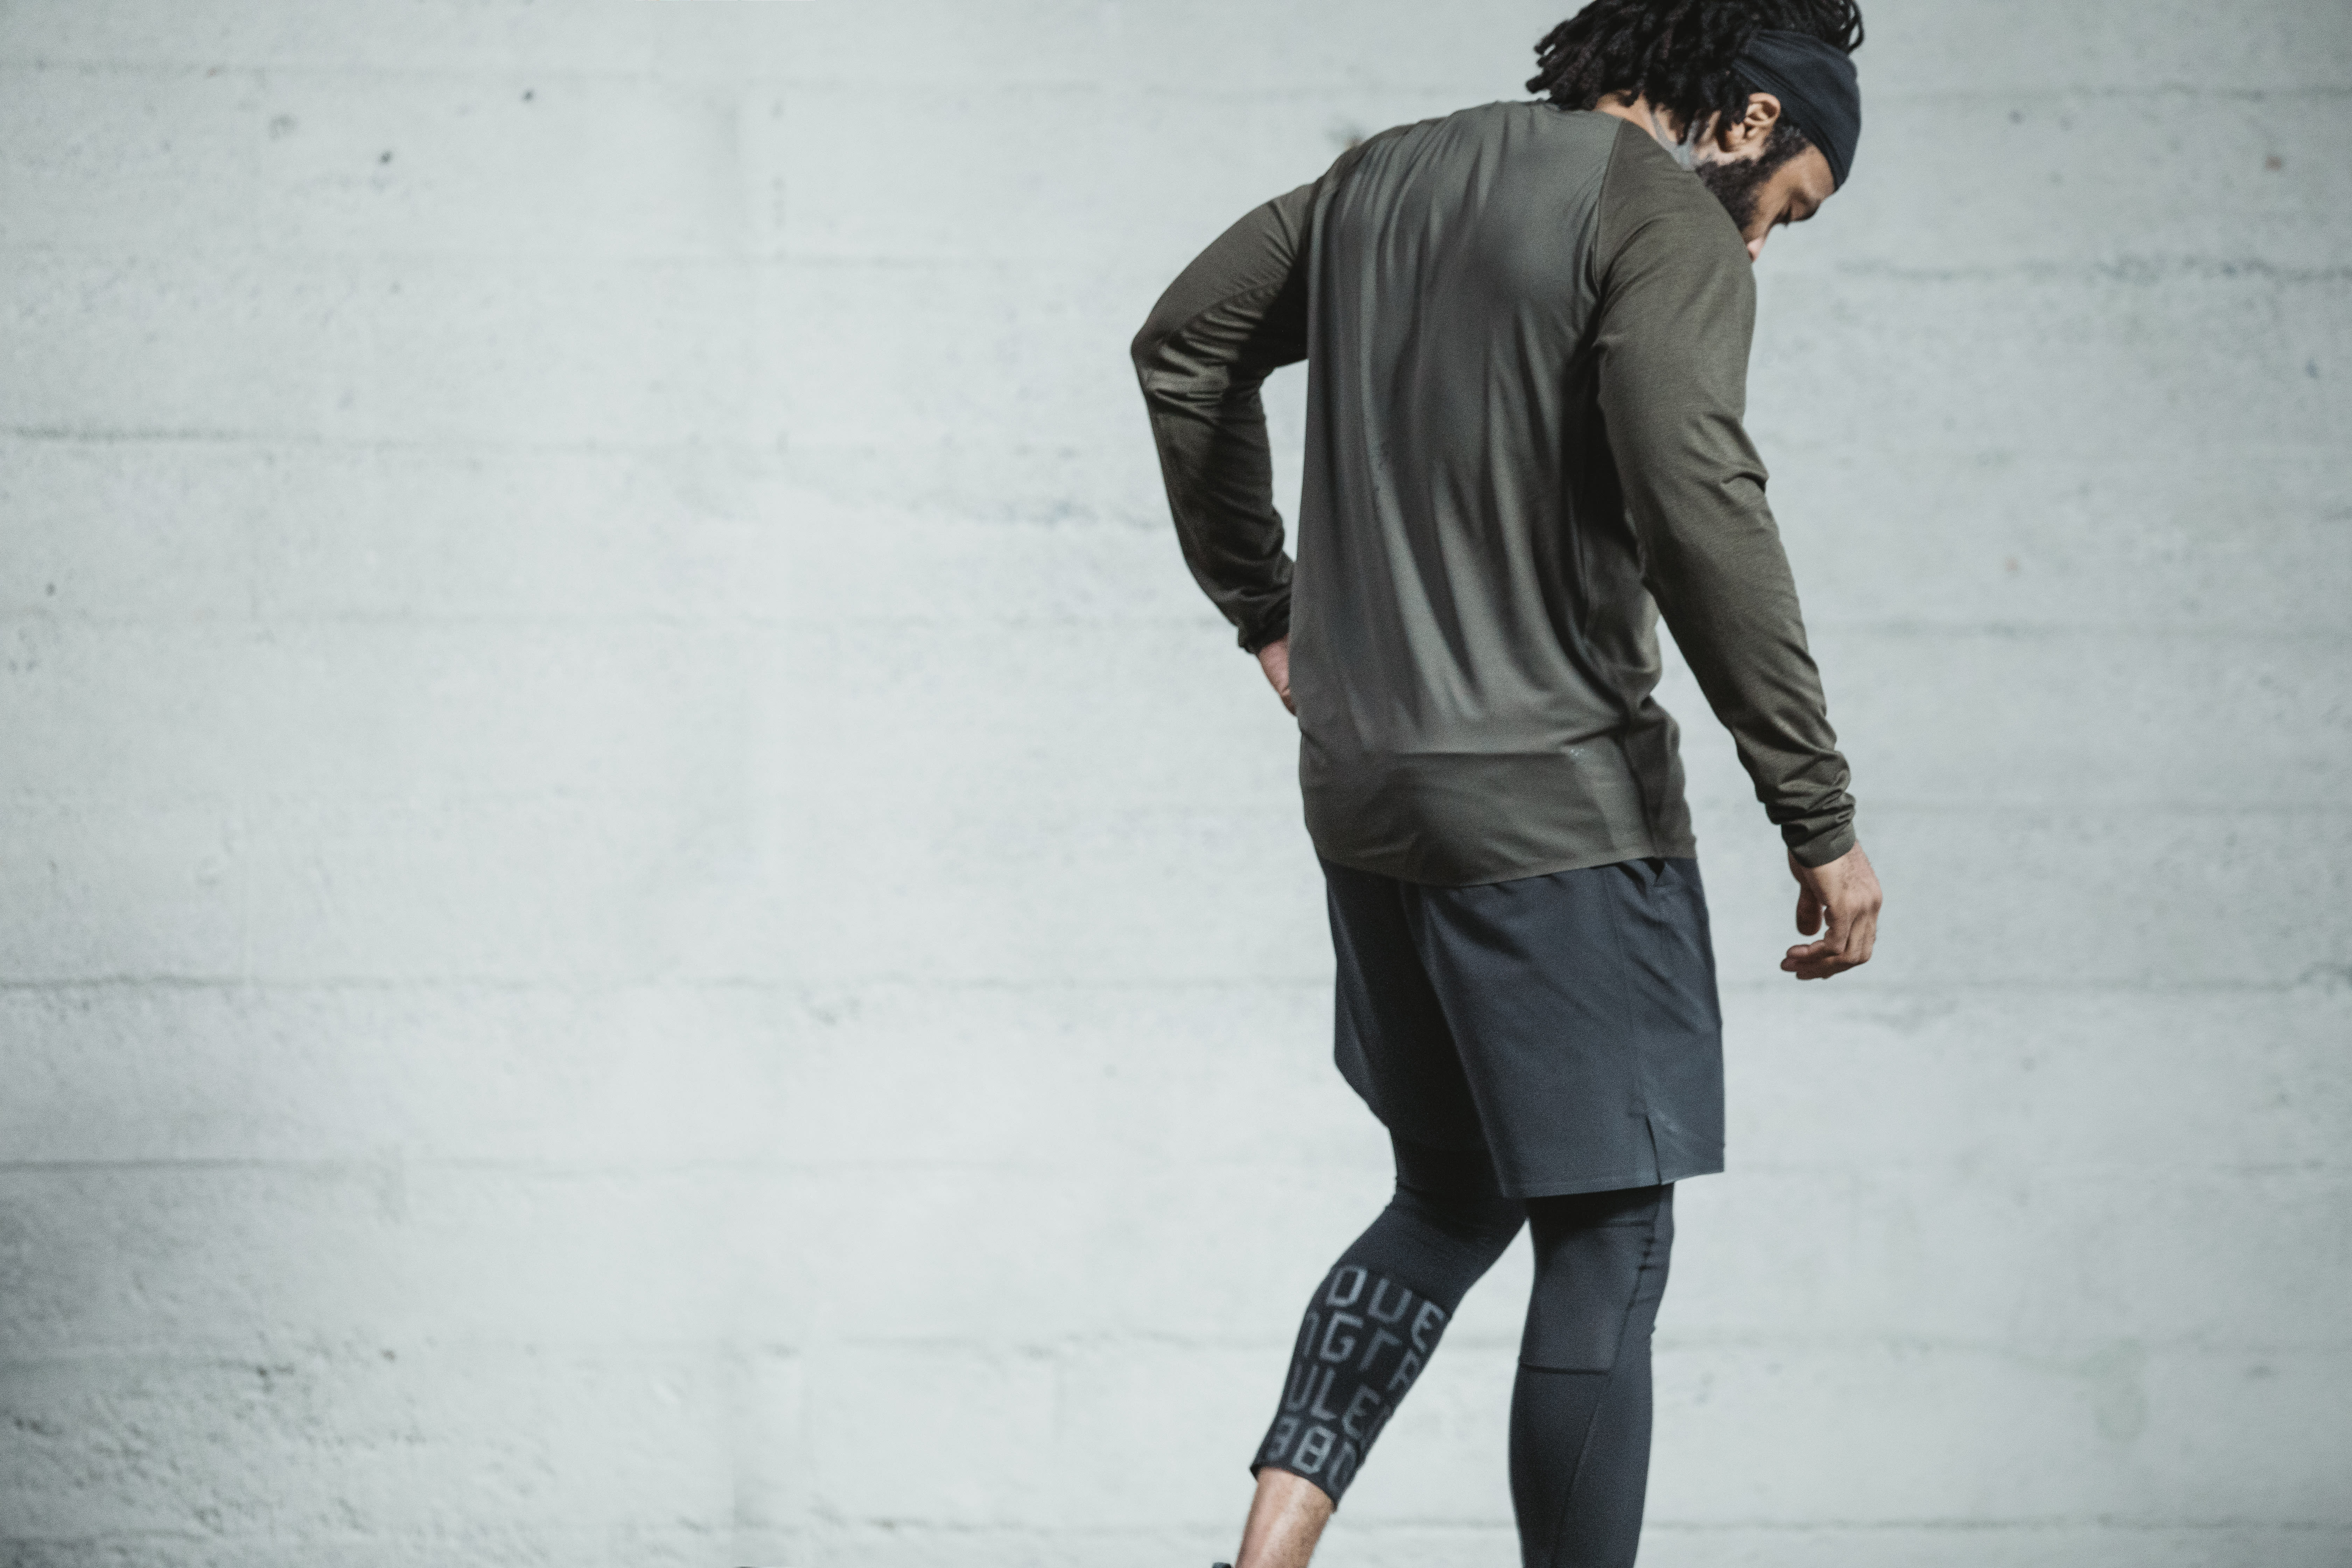 Lululemon X Roden Gray: Vancouver Fashion Brands Launch New Collaboration